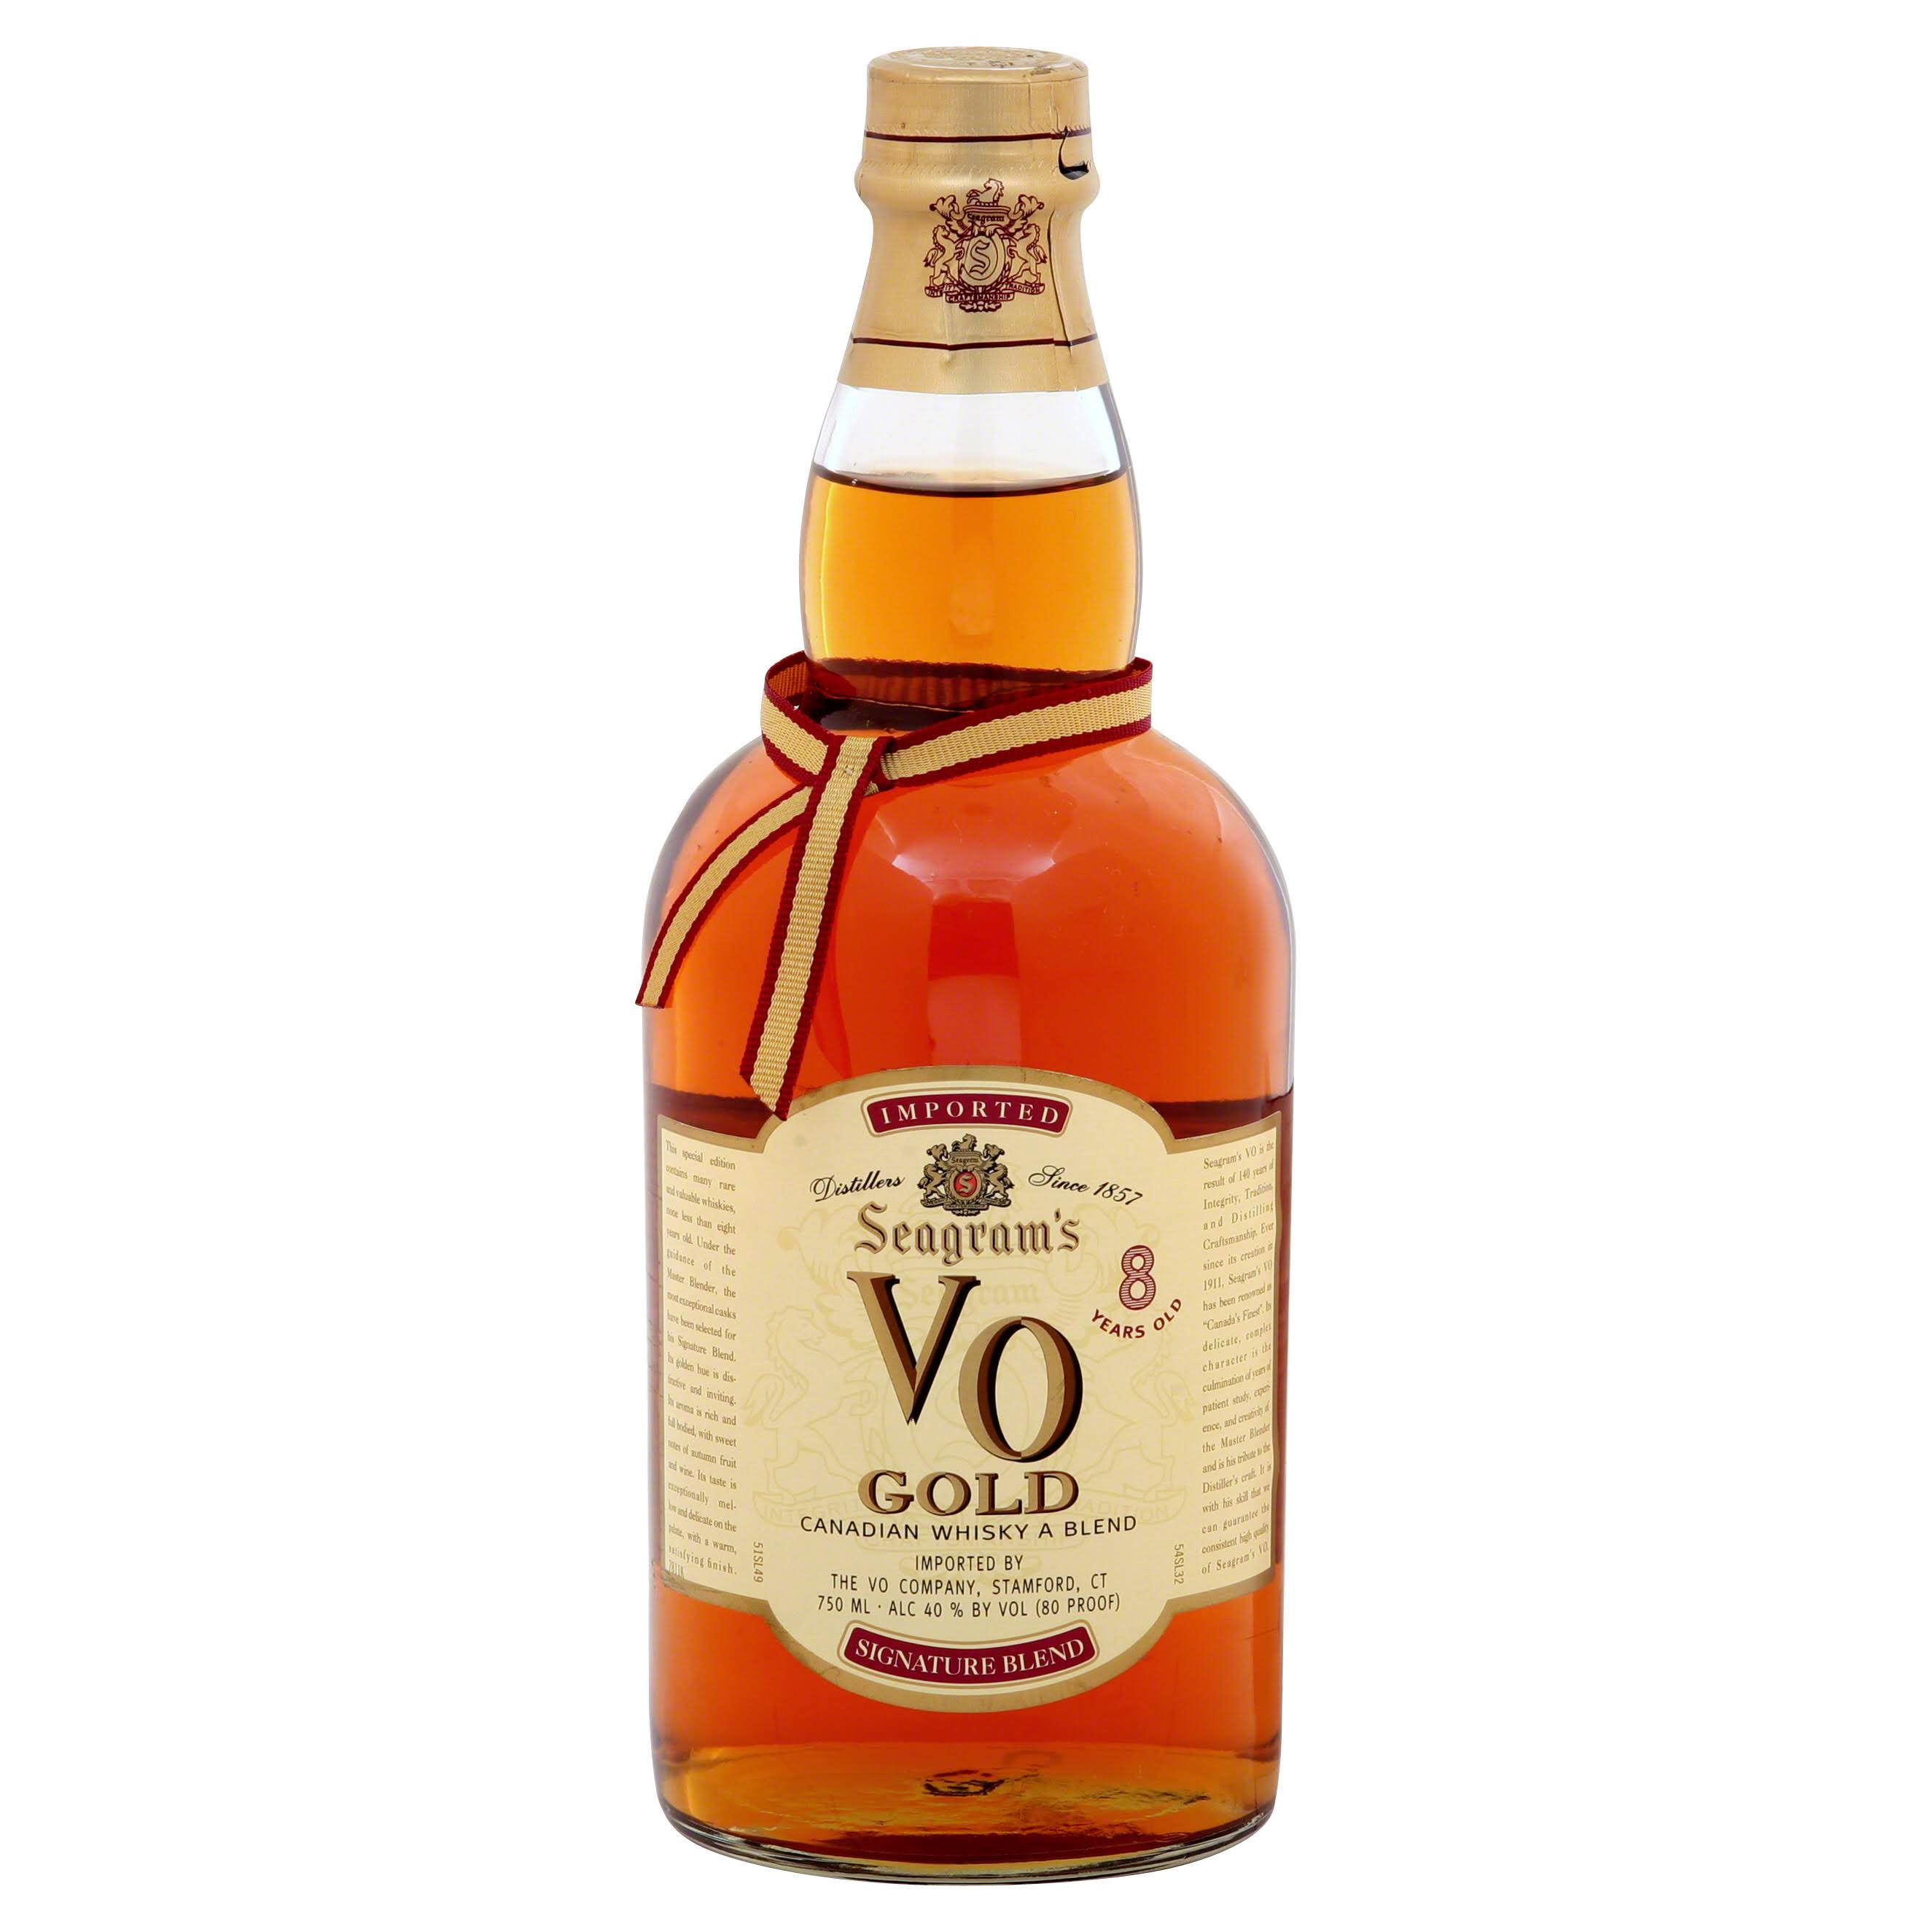 Seagram's V0 Gold Canadian Whisky - 750ml